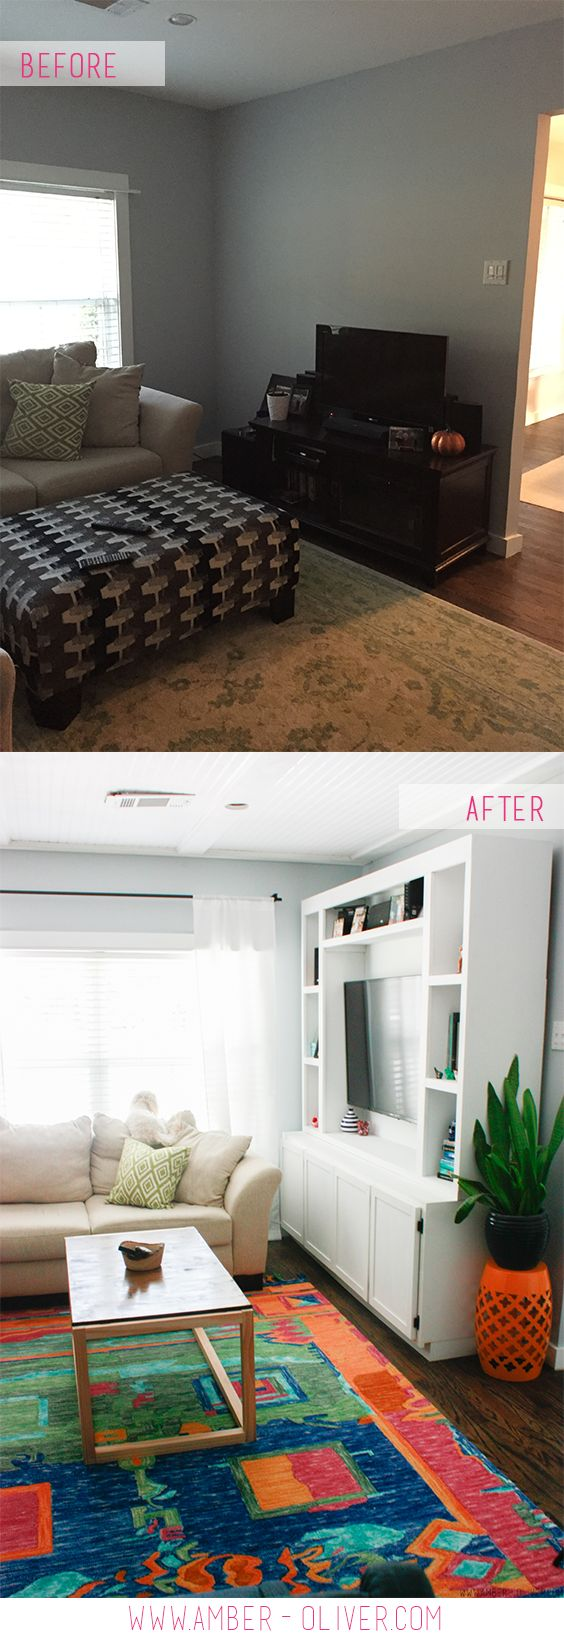 Home decorating diy projects build your own diy for Diy build your own house